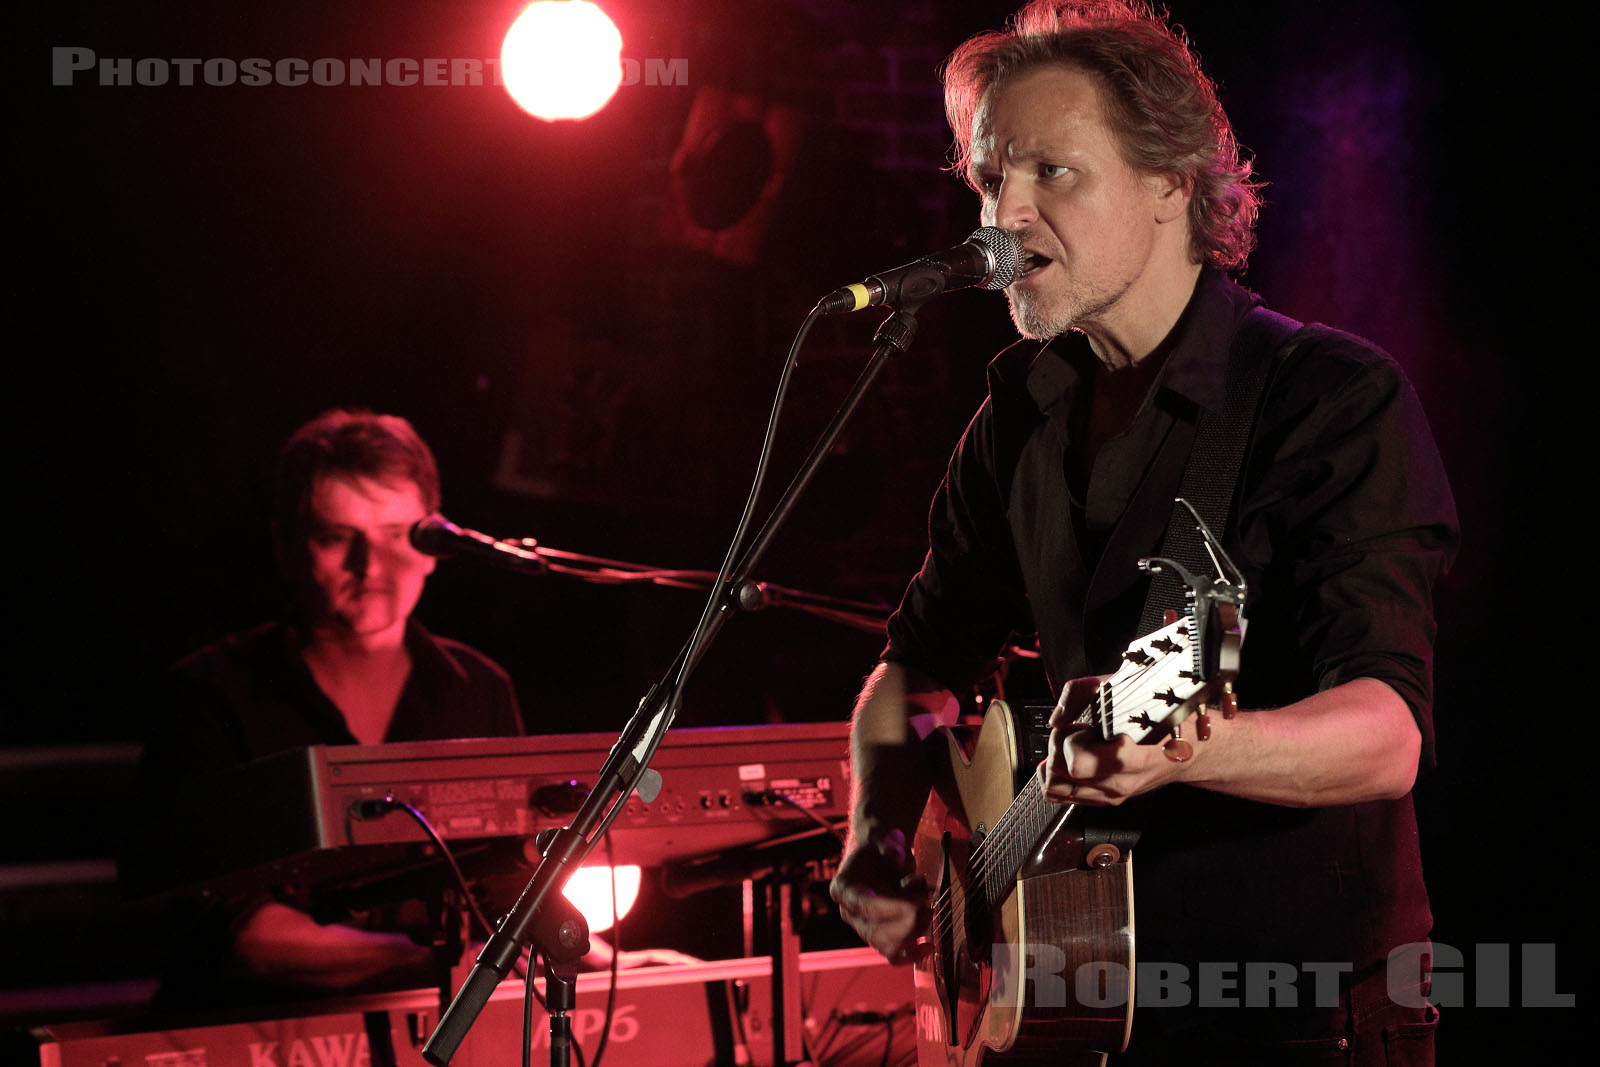 TOM MC RAE - 2017-09-12 - PARIS - La Maroquinerie